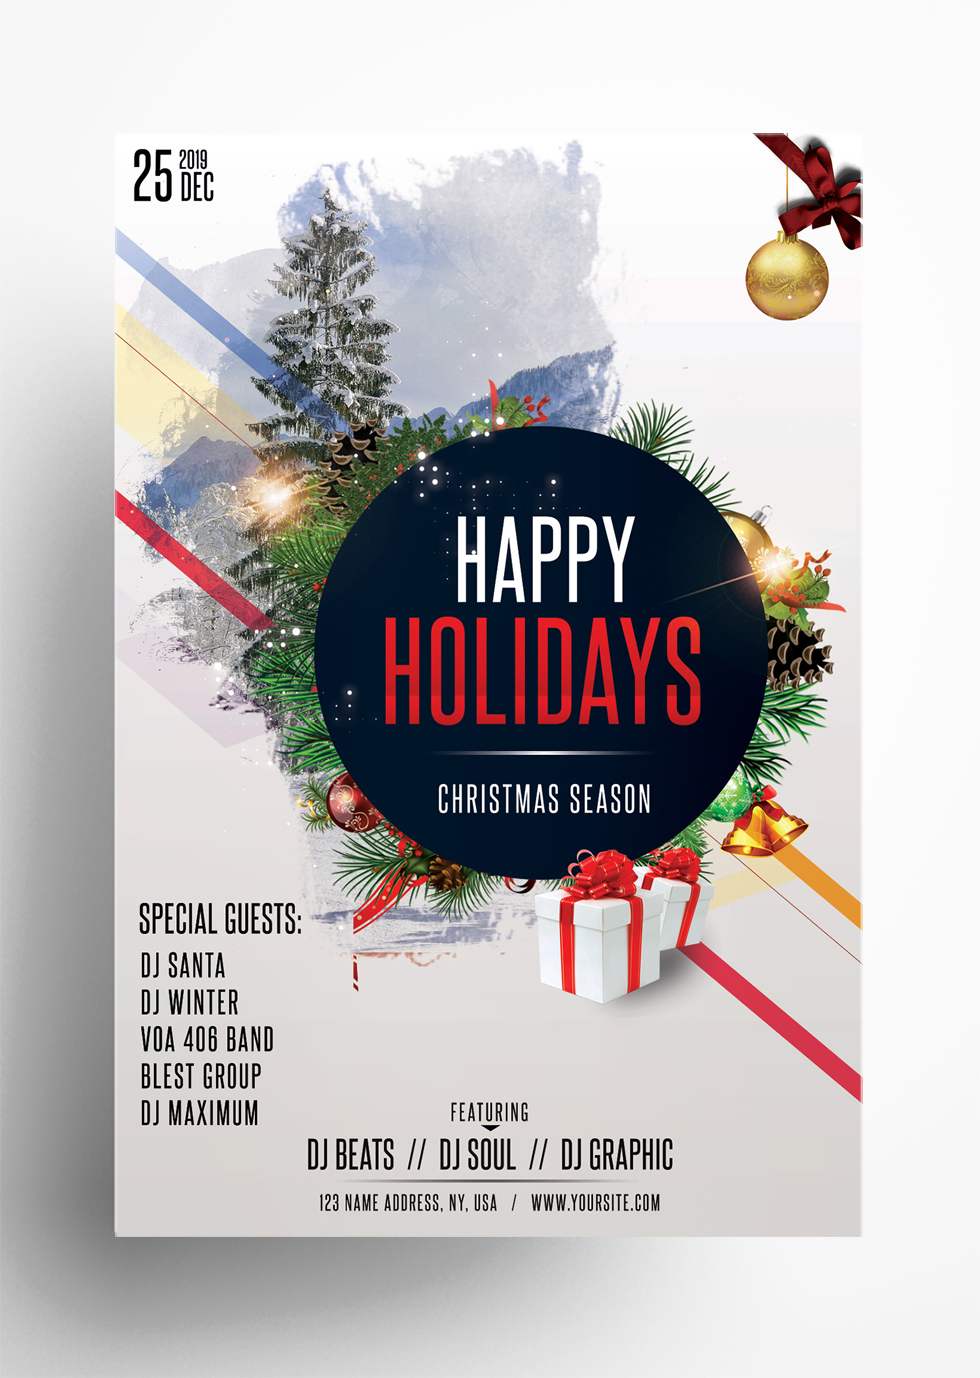 Happy Holidays – Free Christmas PSD Flyer